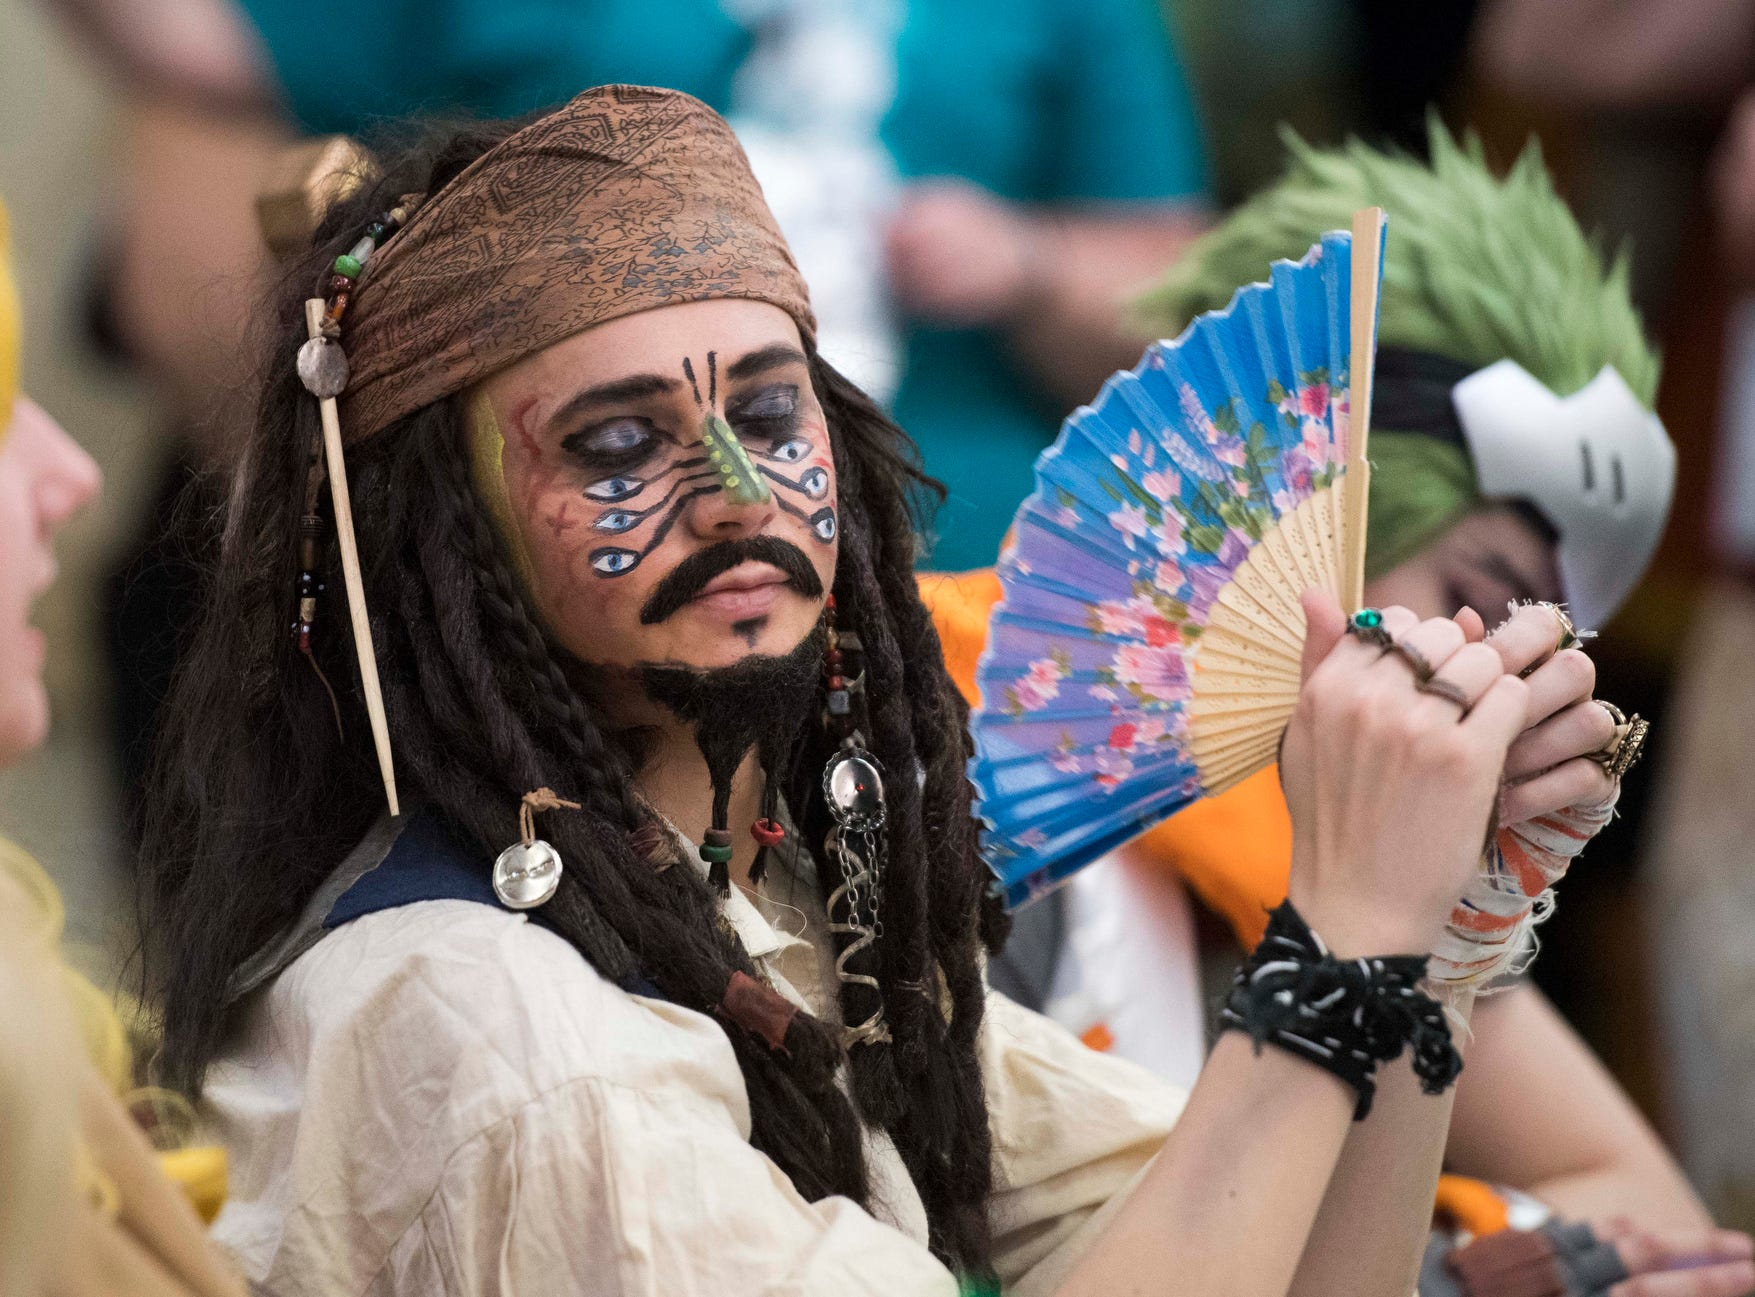 Judge Bret Collins dressed as Cannibal Jack Sparrow fans himself while waiting for the Cosplay Contest to start during EvilleCon, Saturday, afternoon, March 23, 2019.